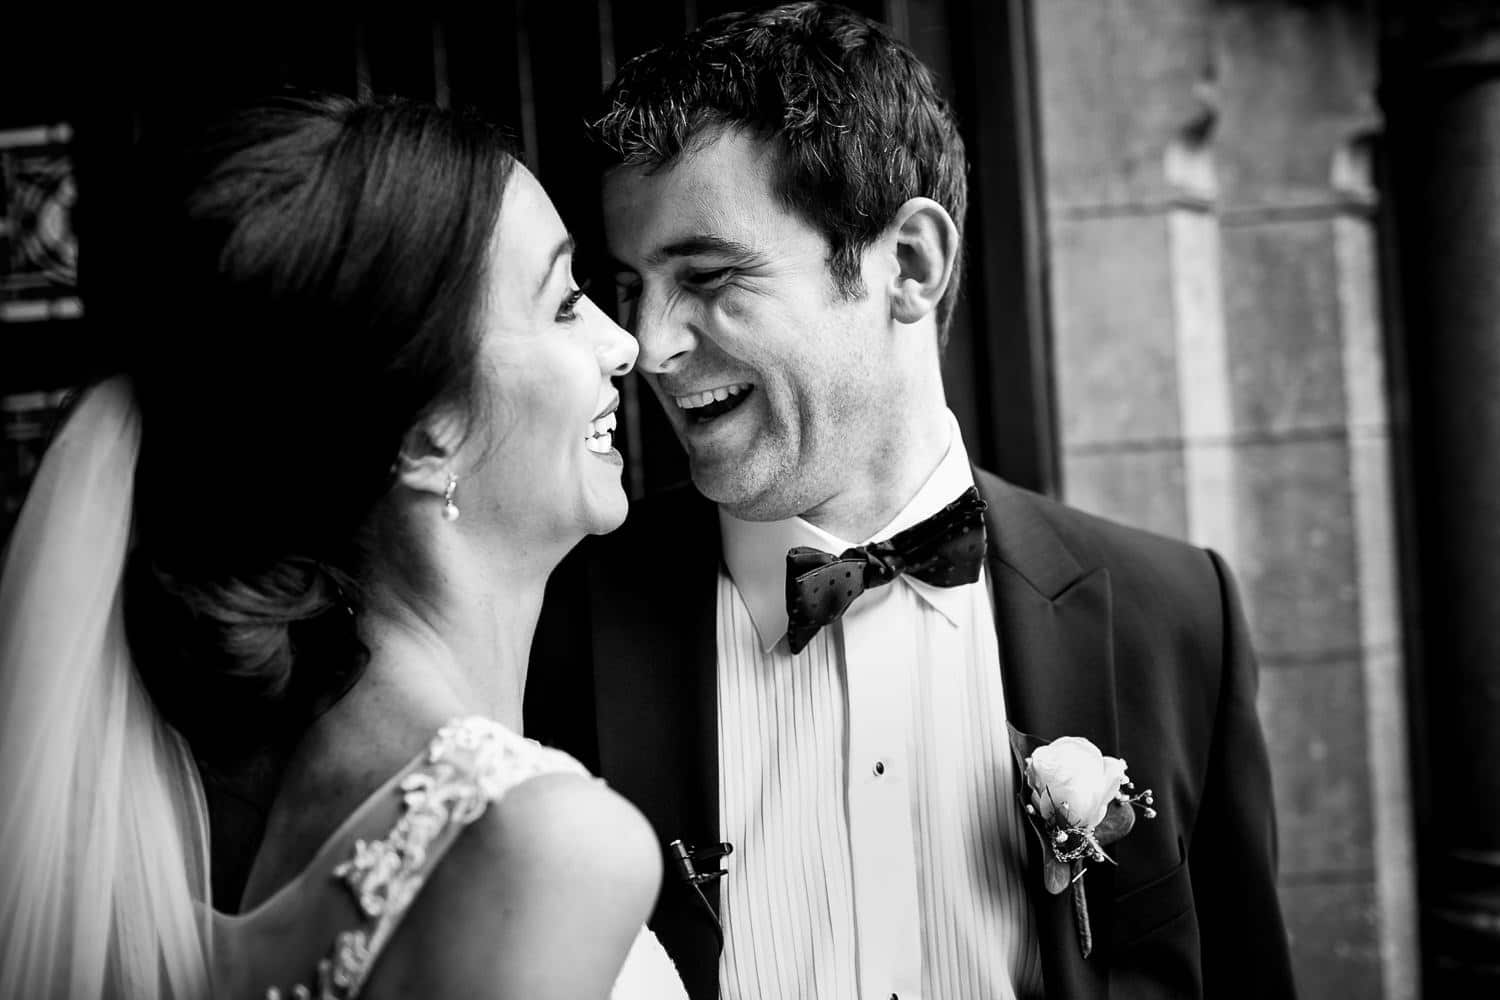 GARETH MCGAUGHEY PHOTOGRAPHY - BELLINGHAM CASTLE WEDDING 01800